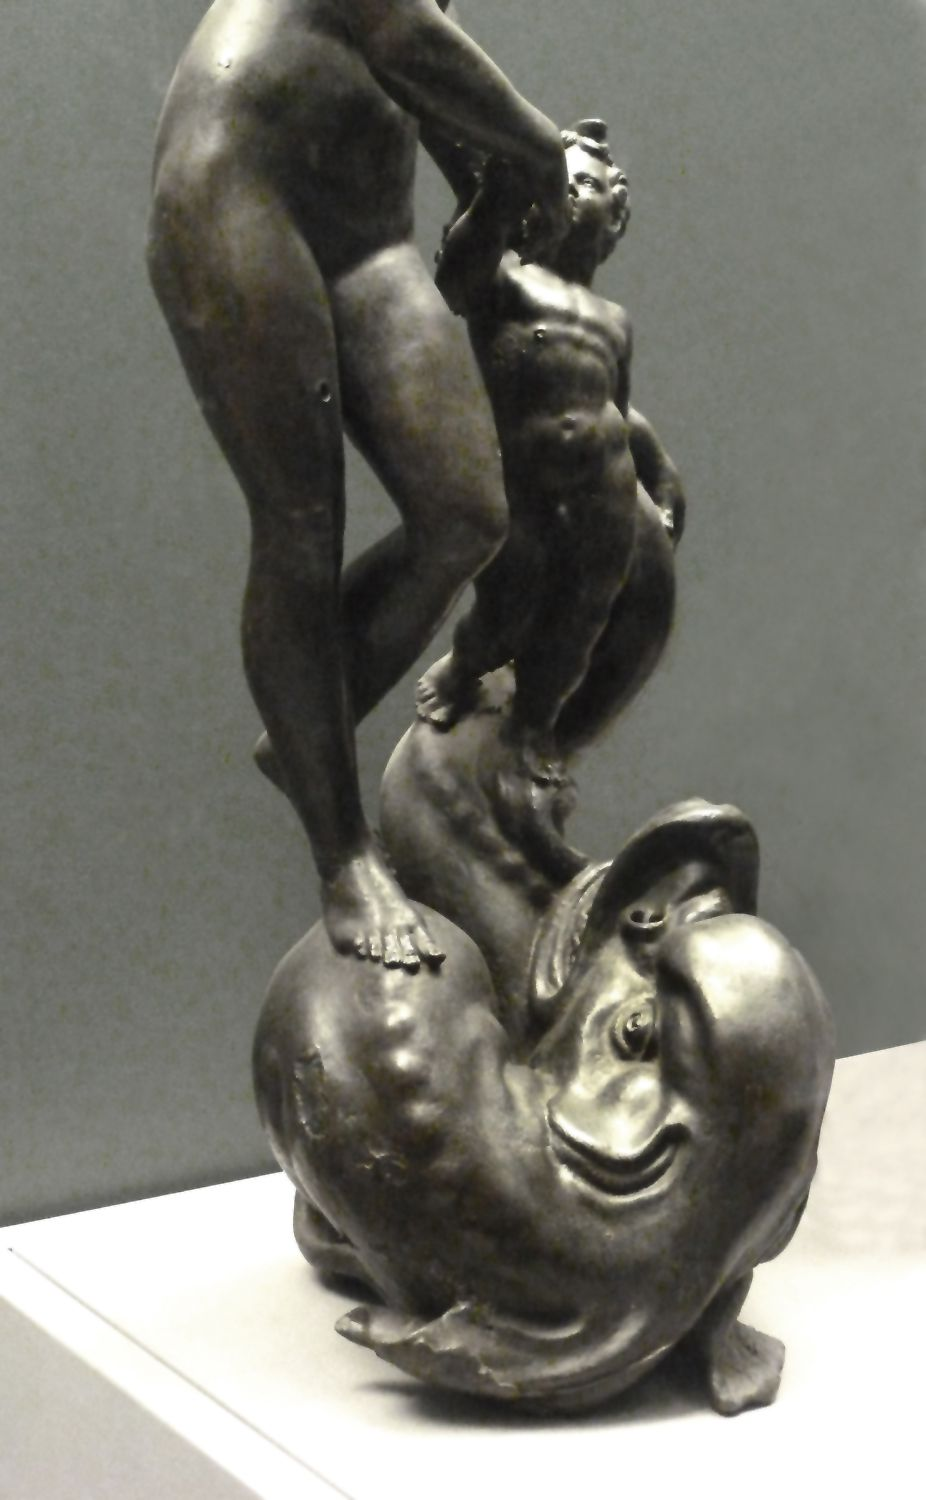 Venus and Putto, standing on a sea creature Lower half